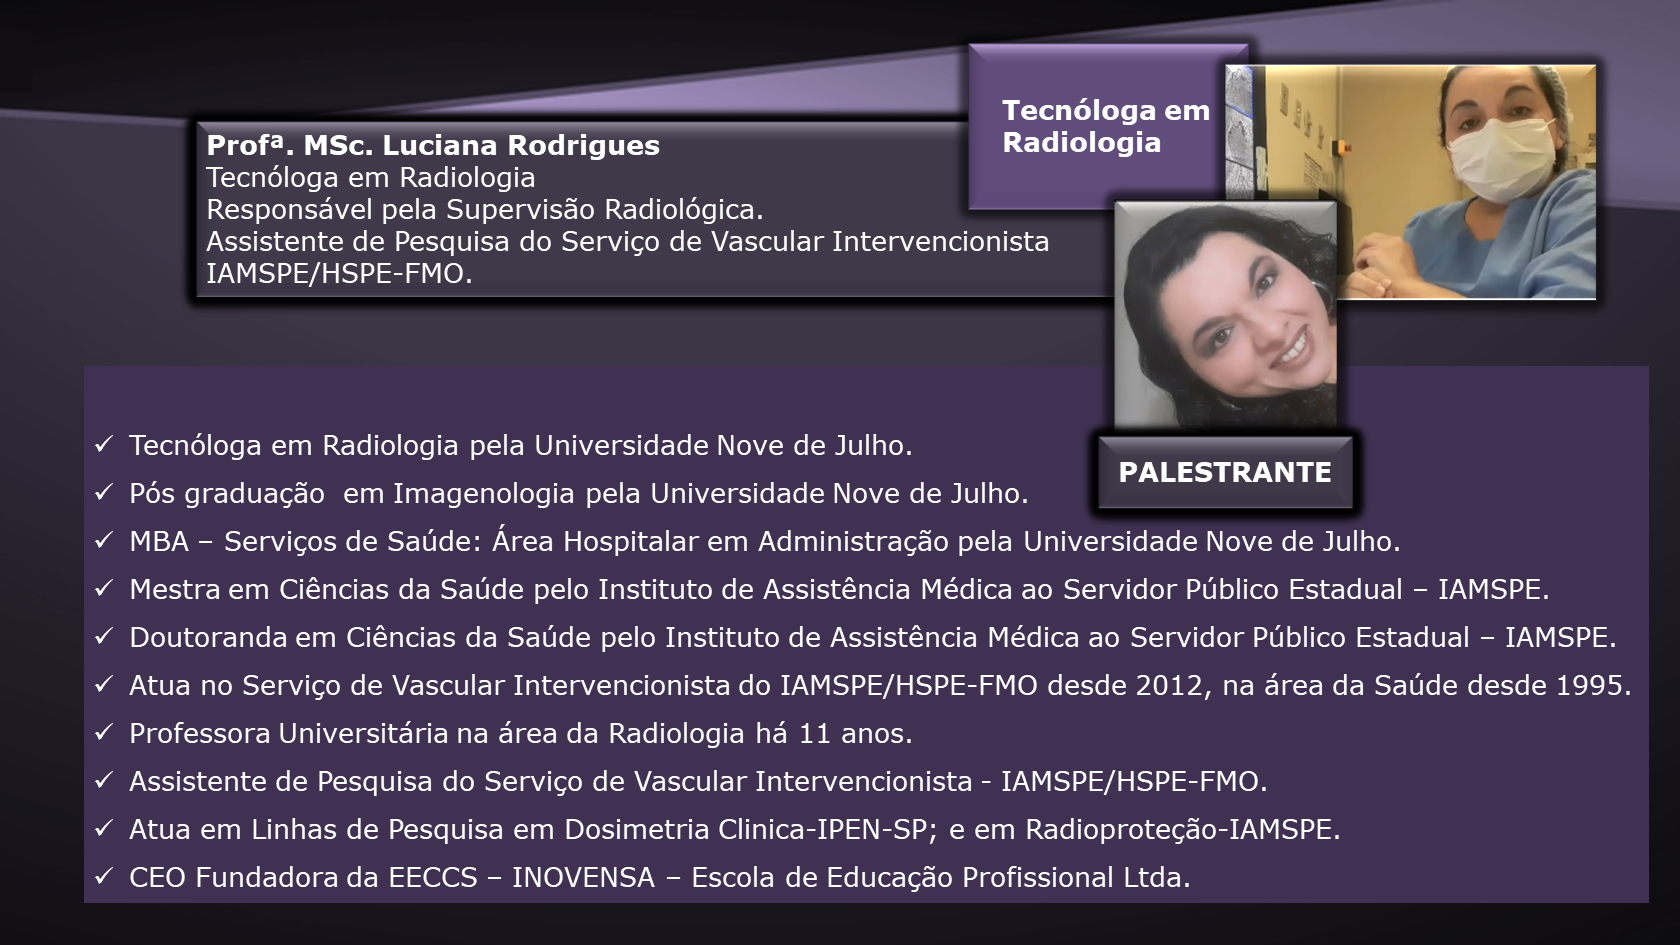 1 TR. LUCIANA RODRIGUES